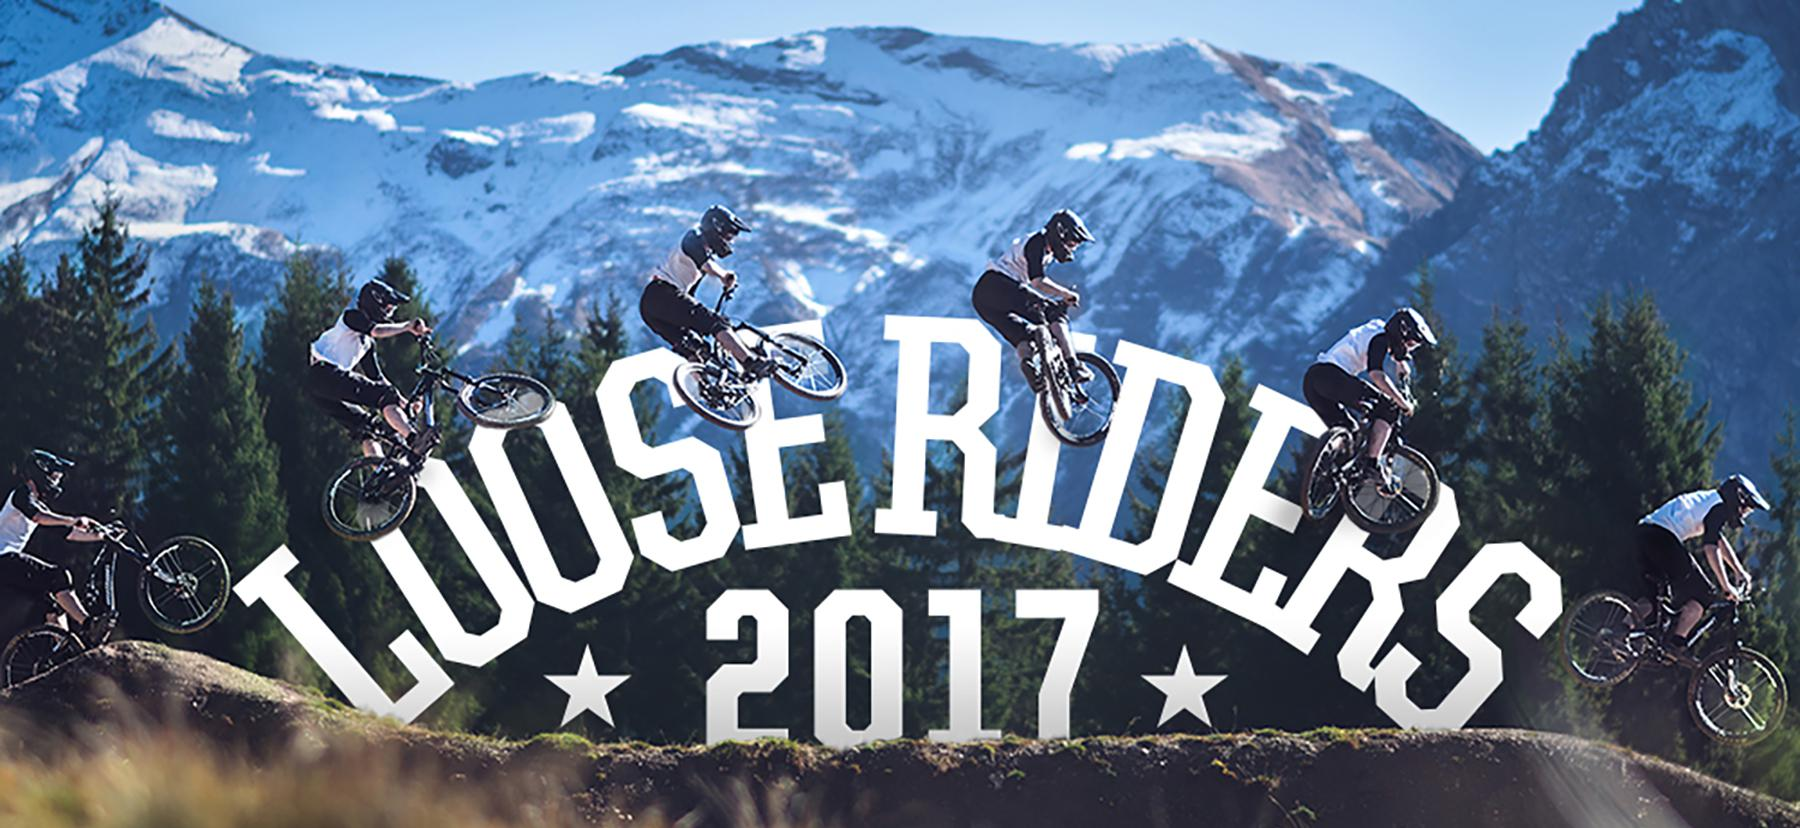 Loose riders clothing for downhill and freeride global alliance